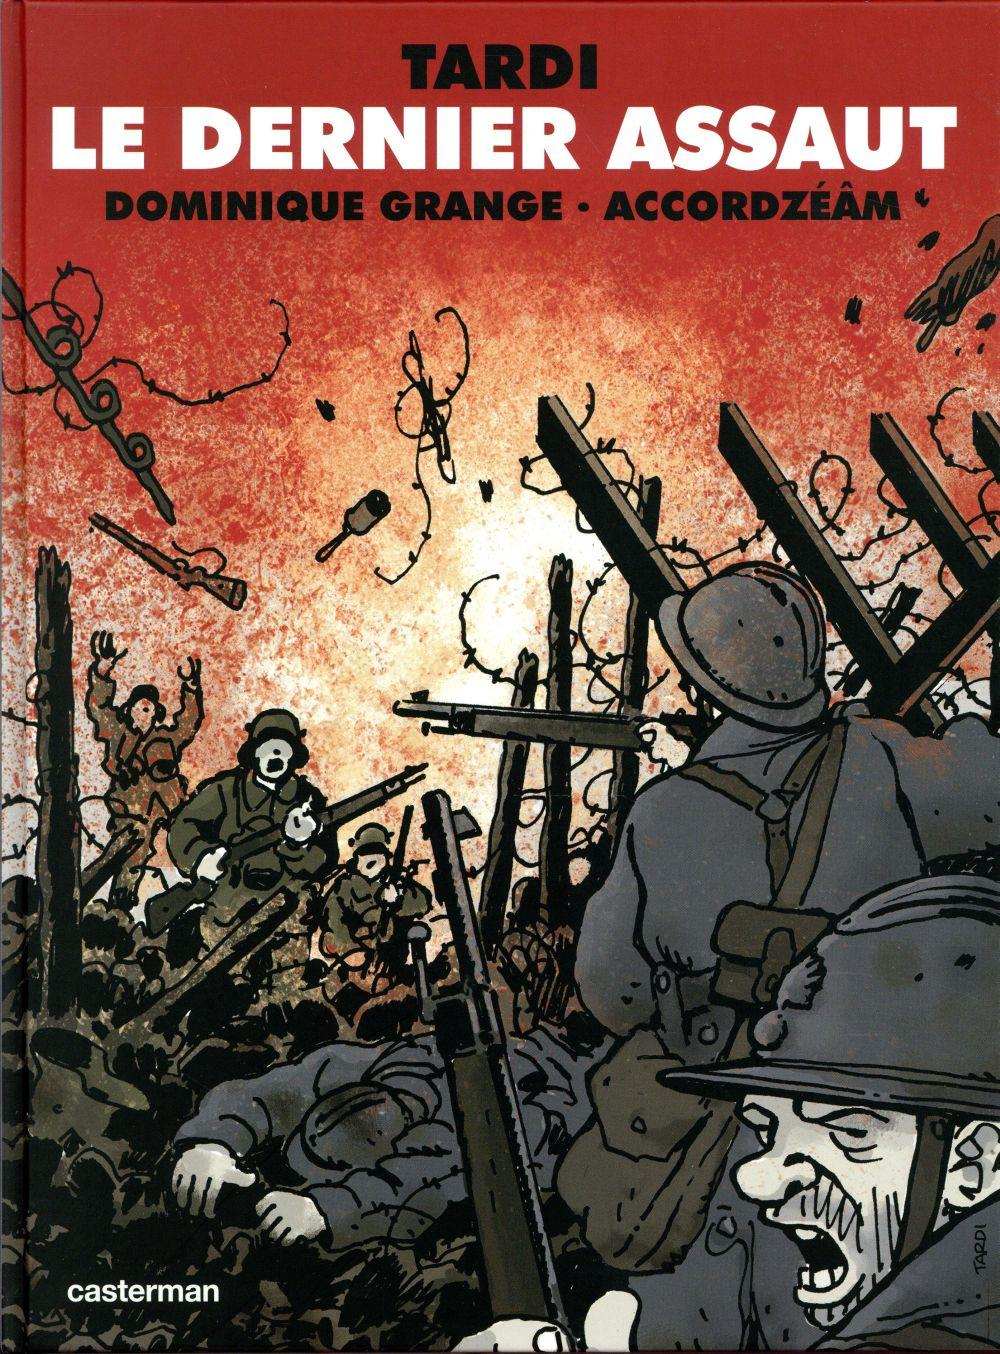 Le dernier assaut  - Accordzeam  - Dominique Grande  - Jacques Tardi